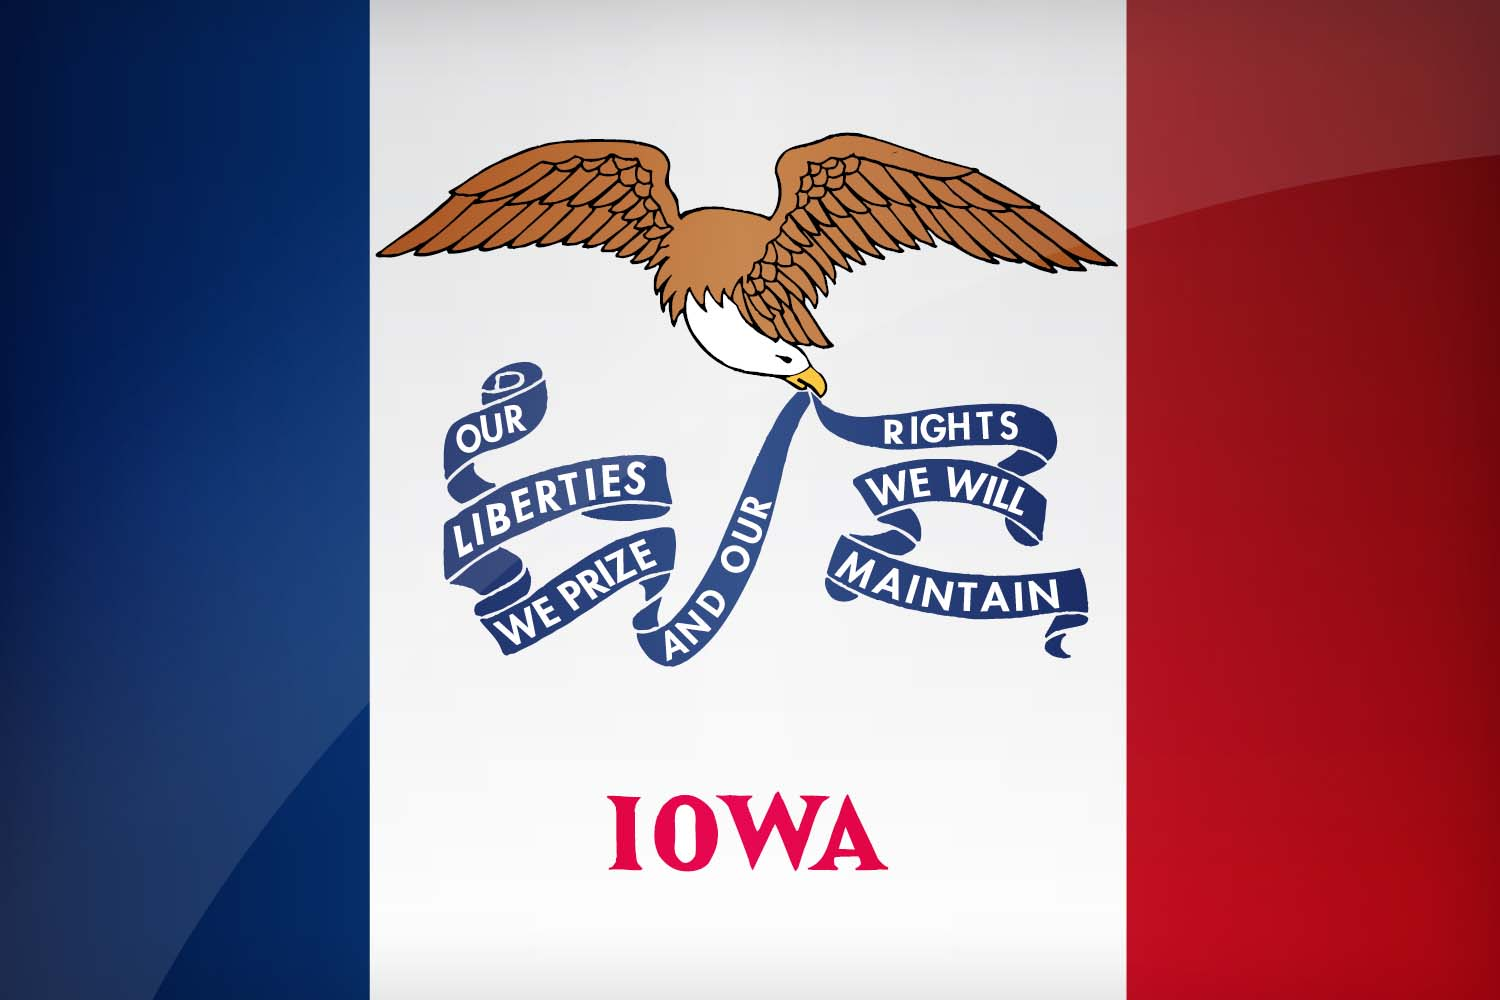 State Court Docket Watch: League of United Latin American Citizens of Iowa v. Pate